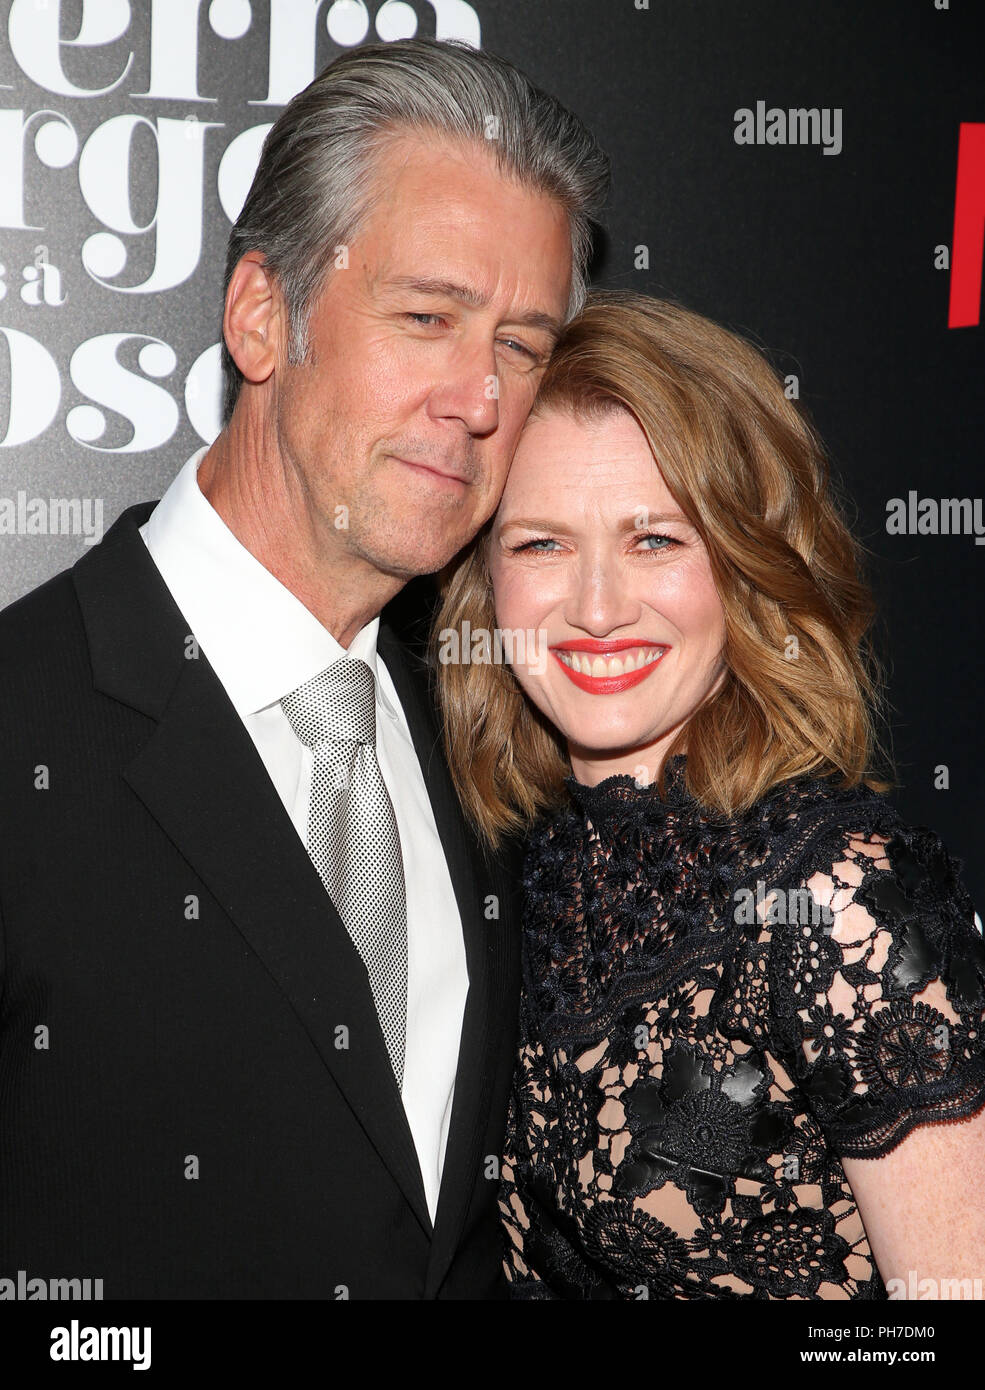 mireille enos and alan ruck stock photos  u0026 mireille enos